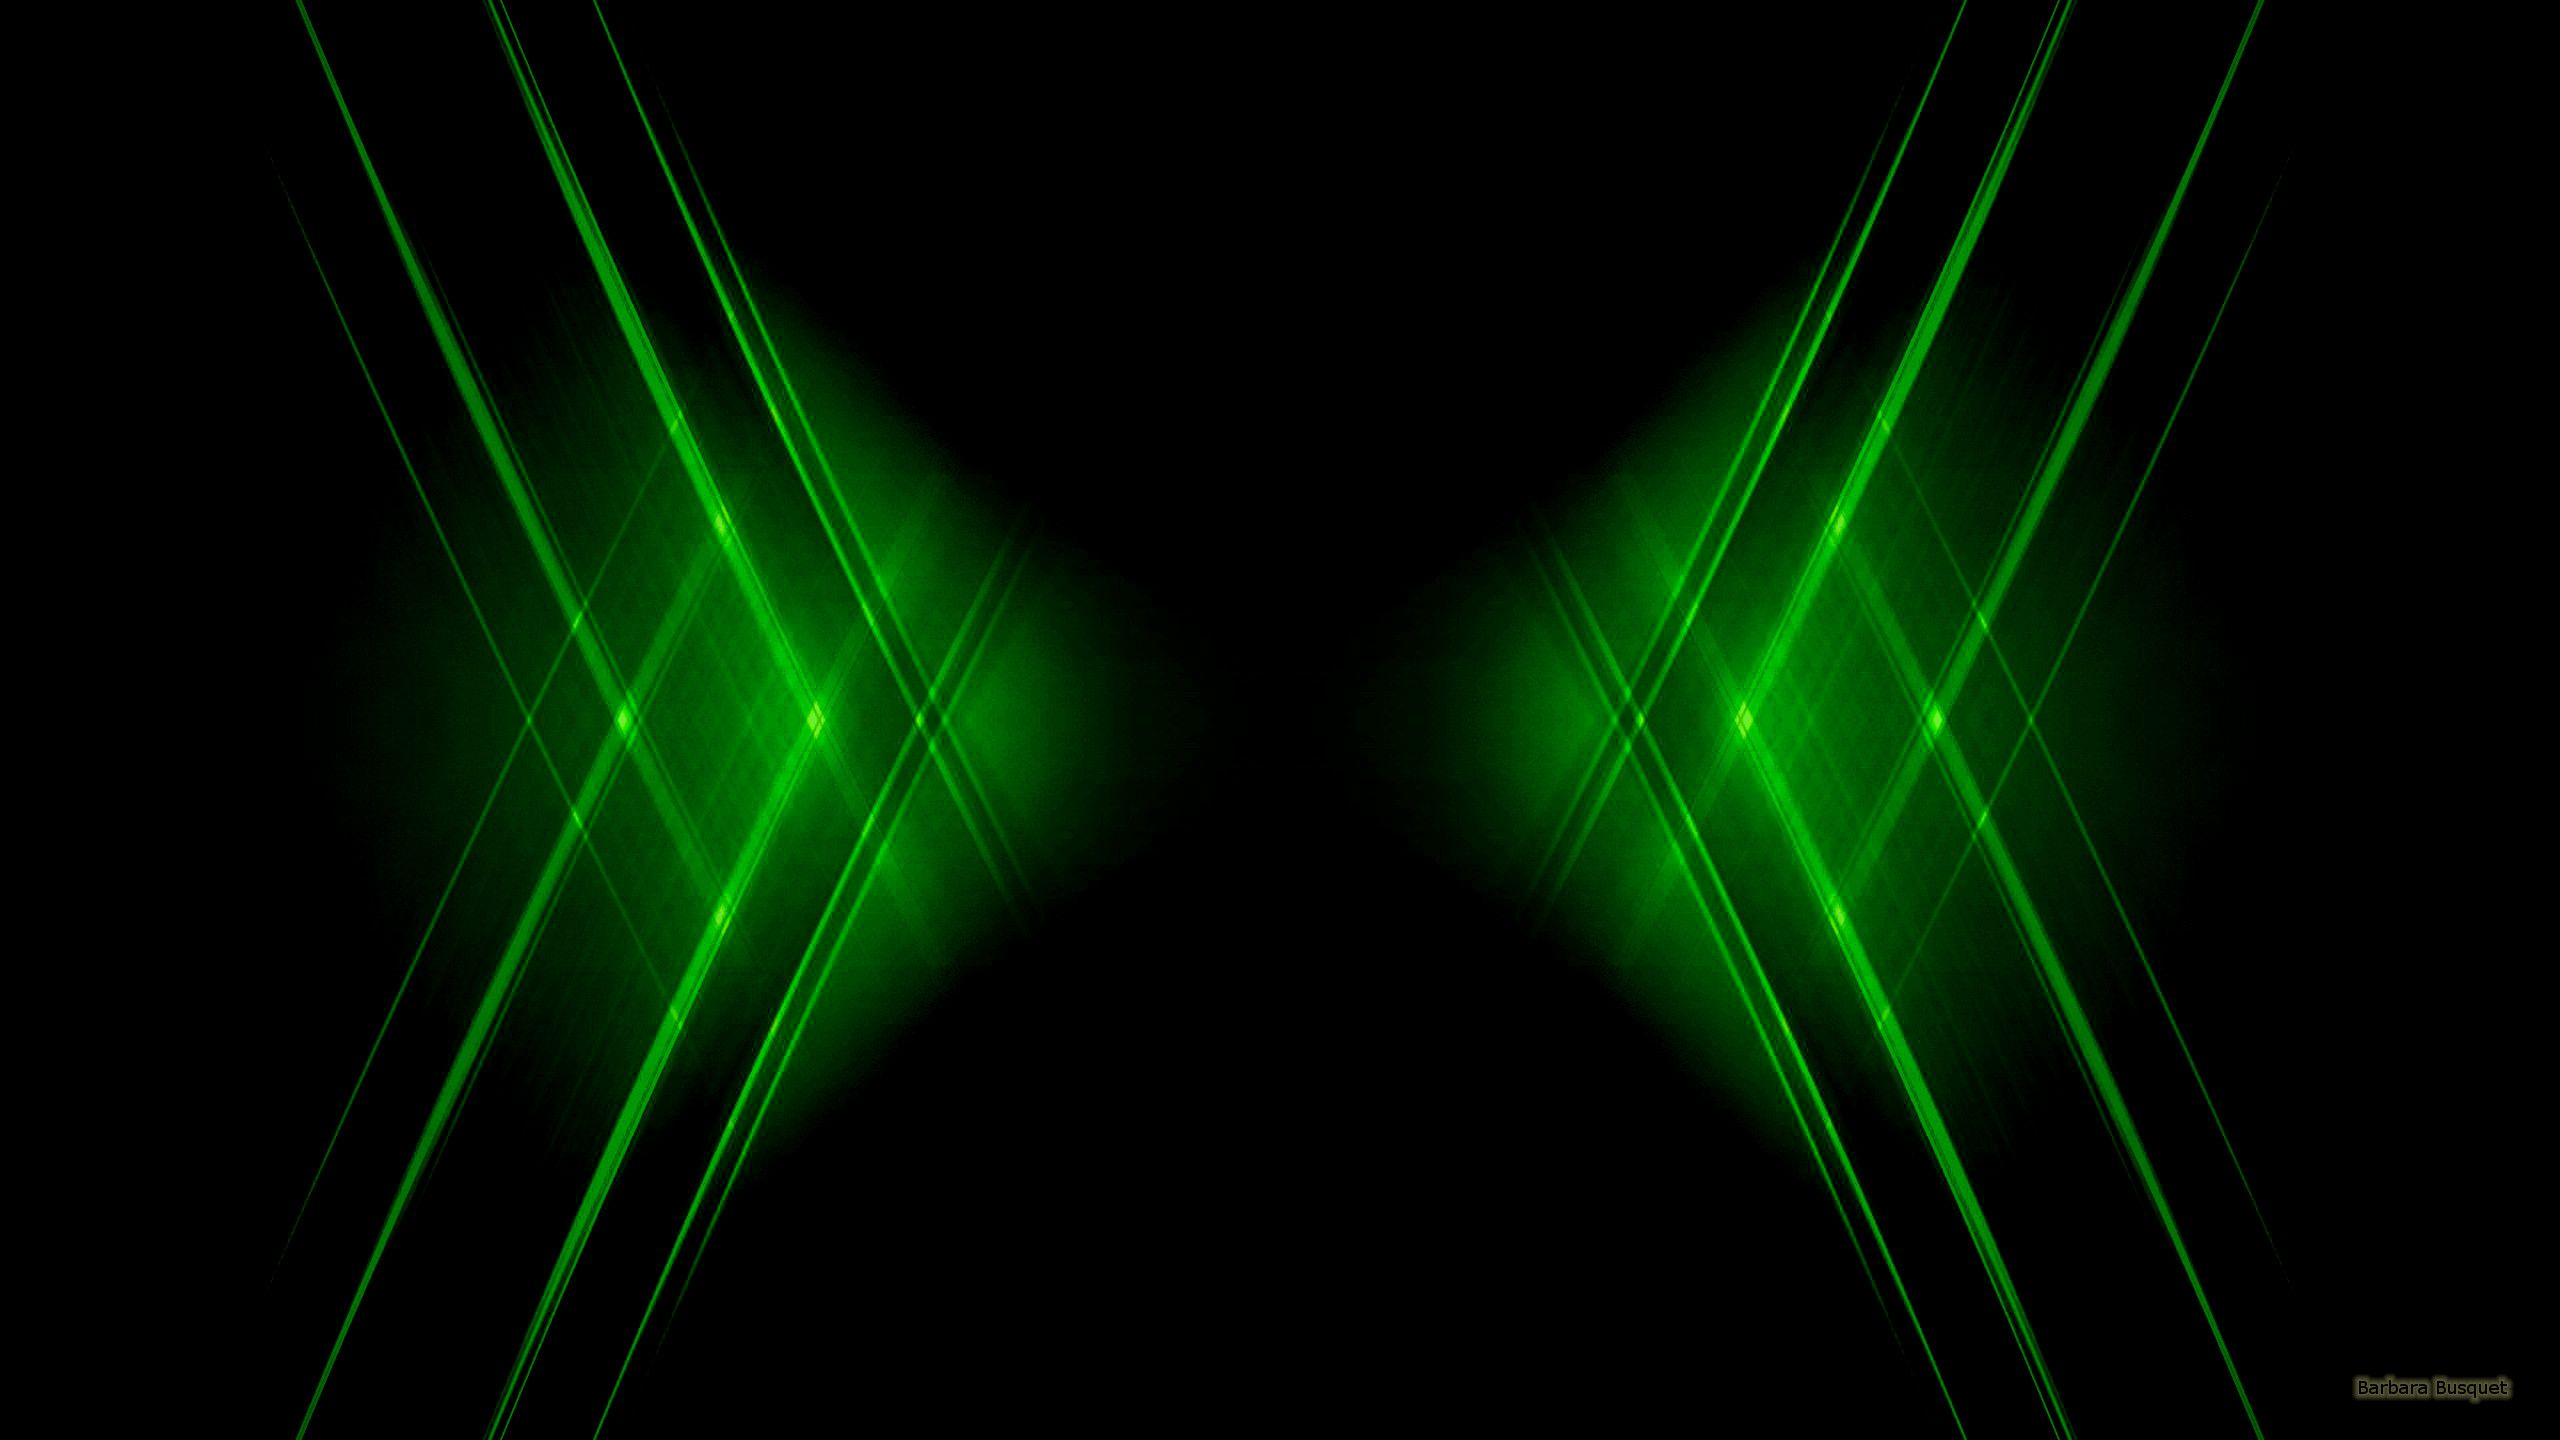 Black And Green Wallpapers On Wallpaperdog